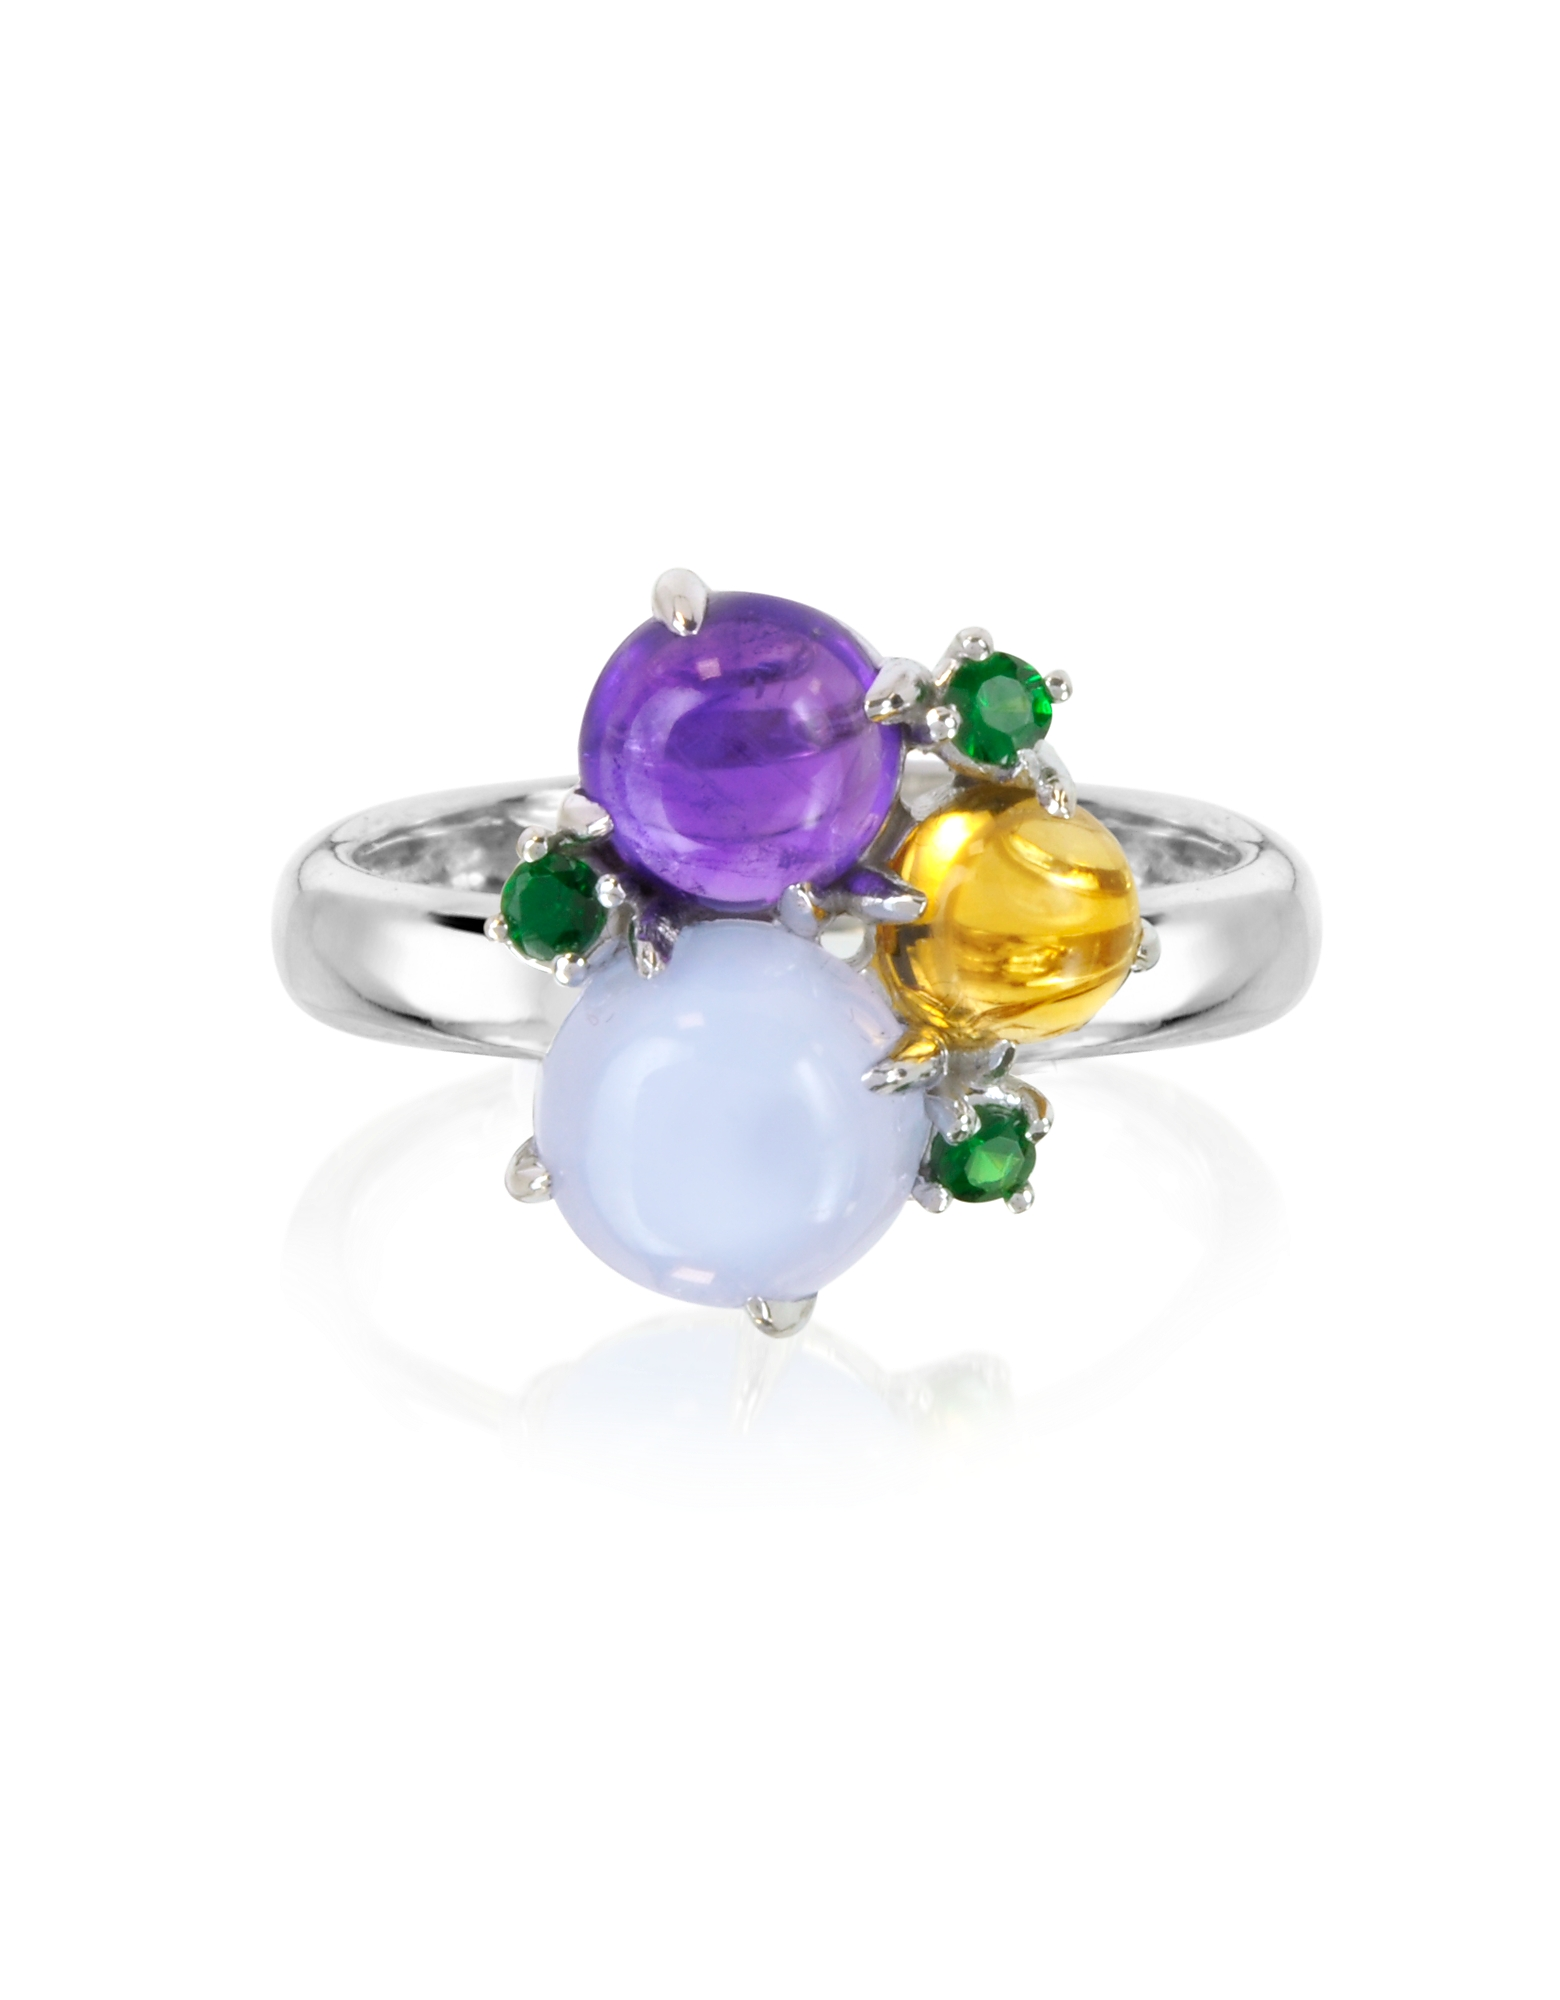 Image of Mia & Beverly Designer Rings, Gemstones 18K White Gold Ring